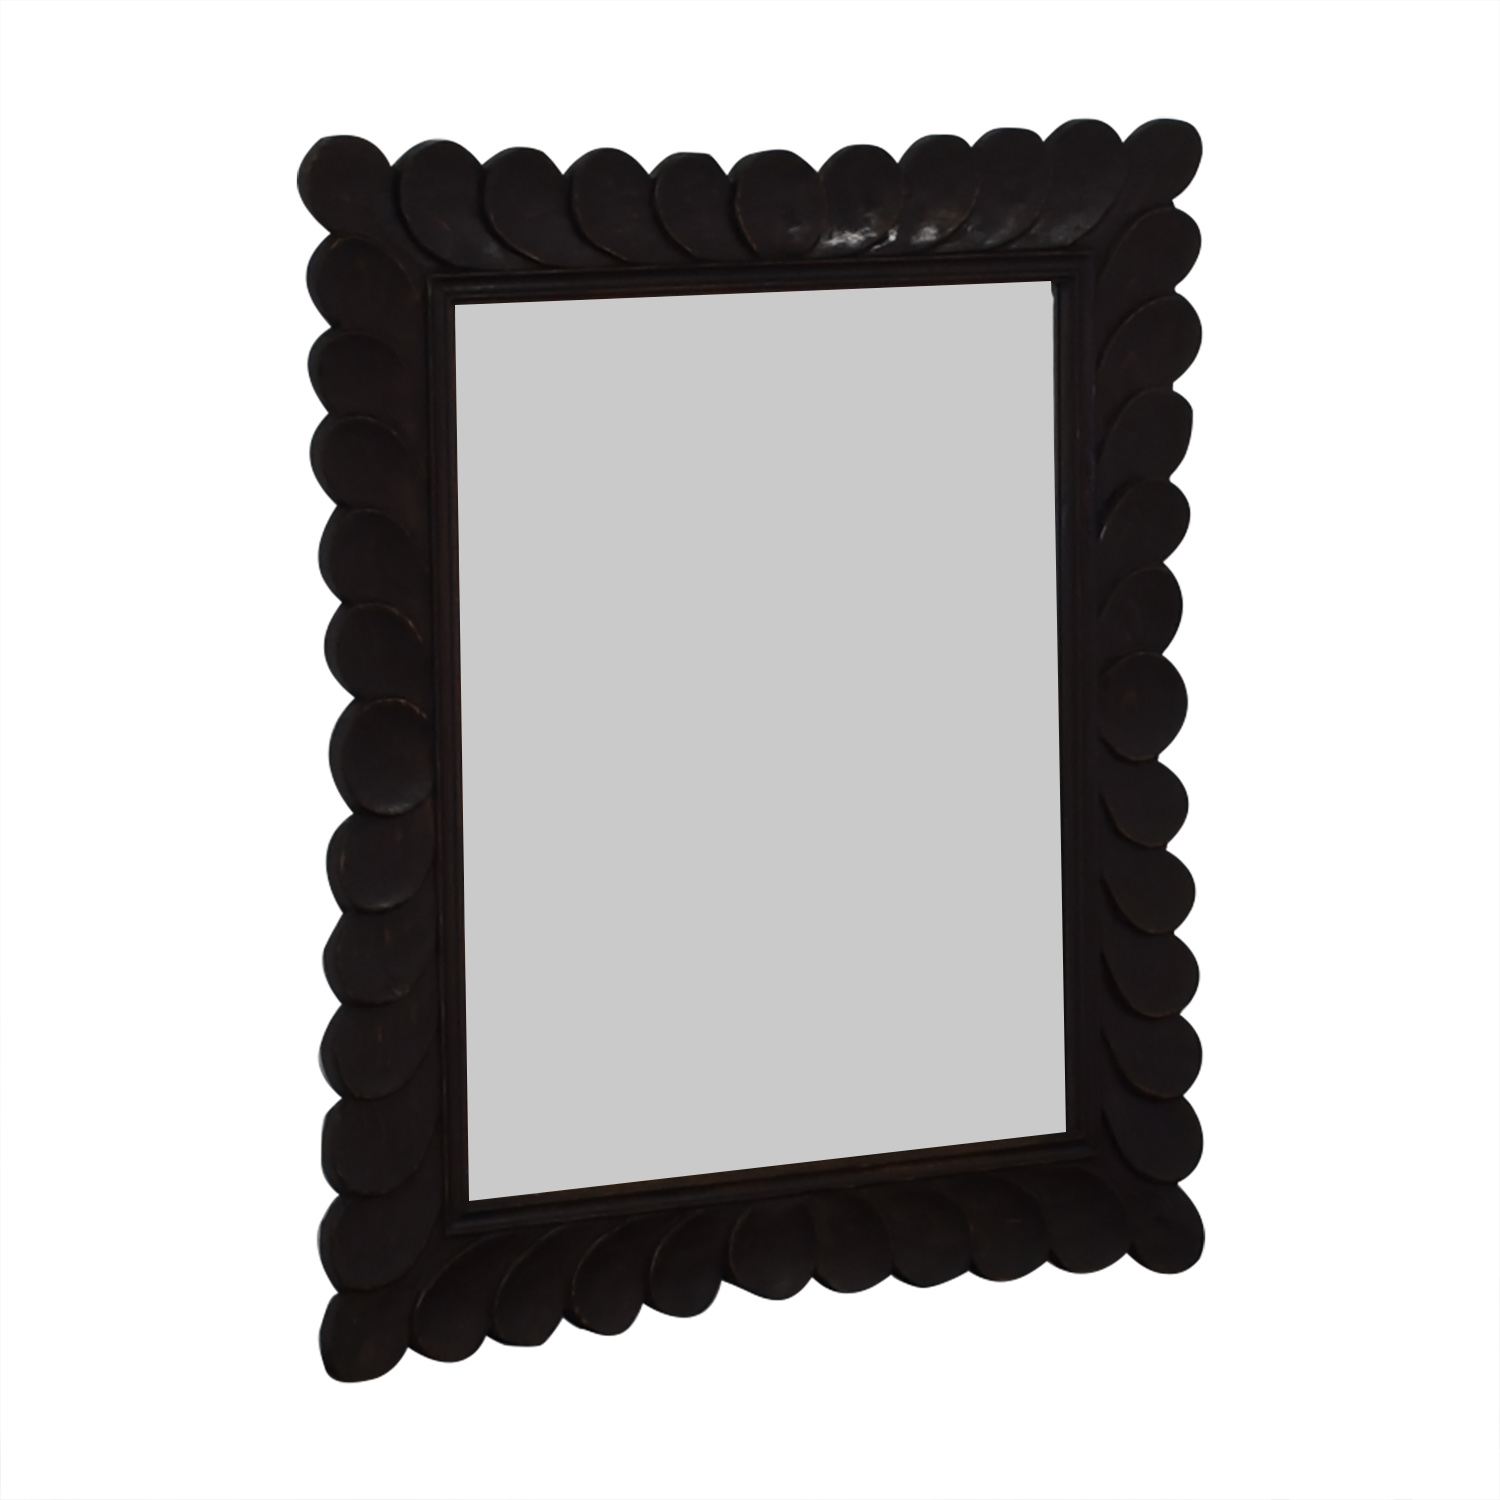 Crate & Barrel Crate & Barrel Feathered Mirror second hand